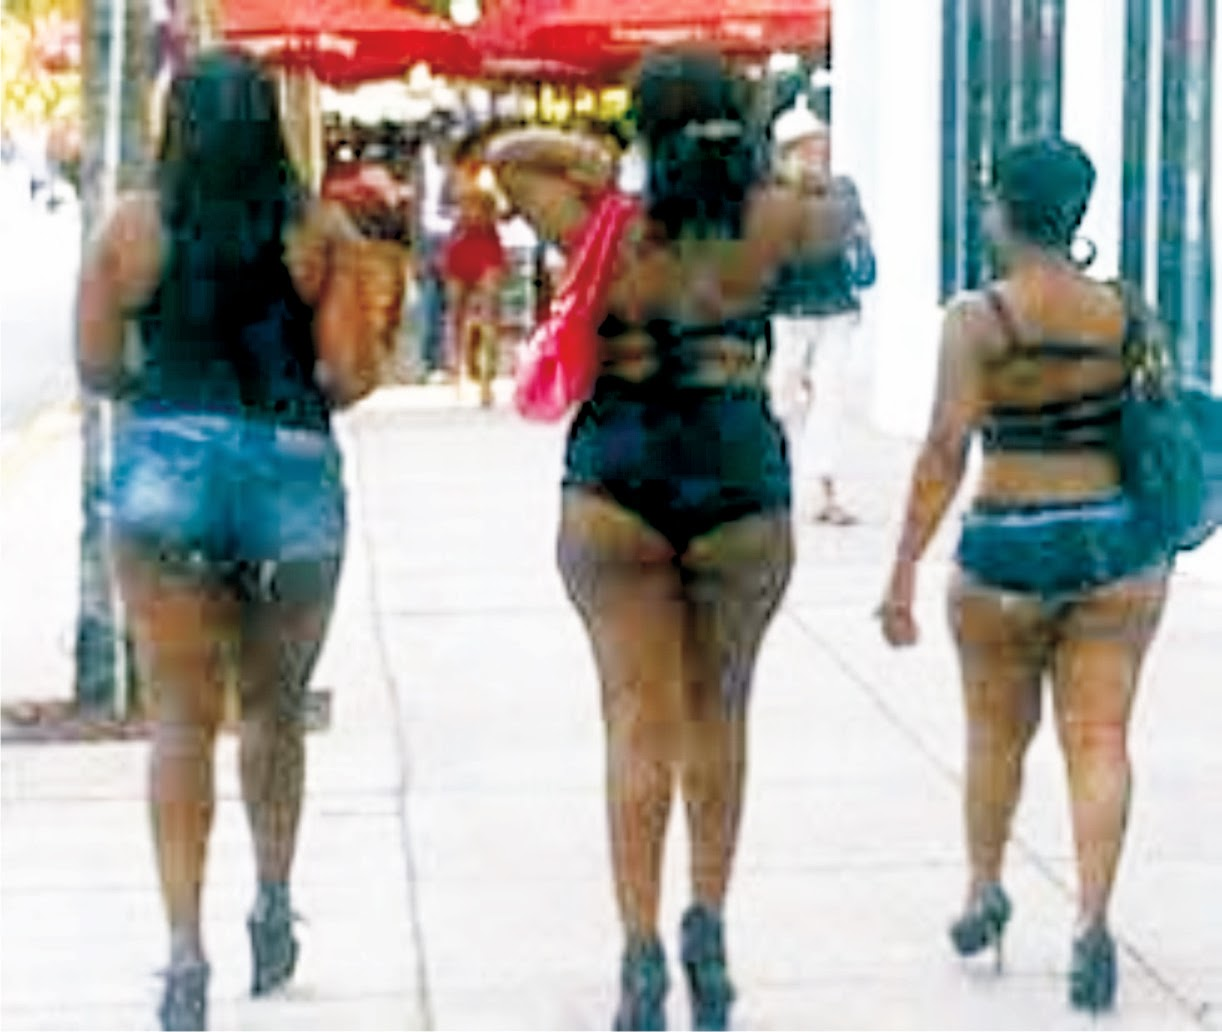 Indecent dressing among students in the University of Uyo